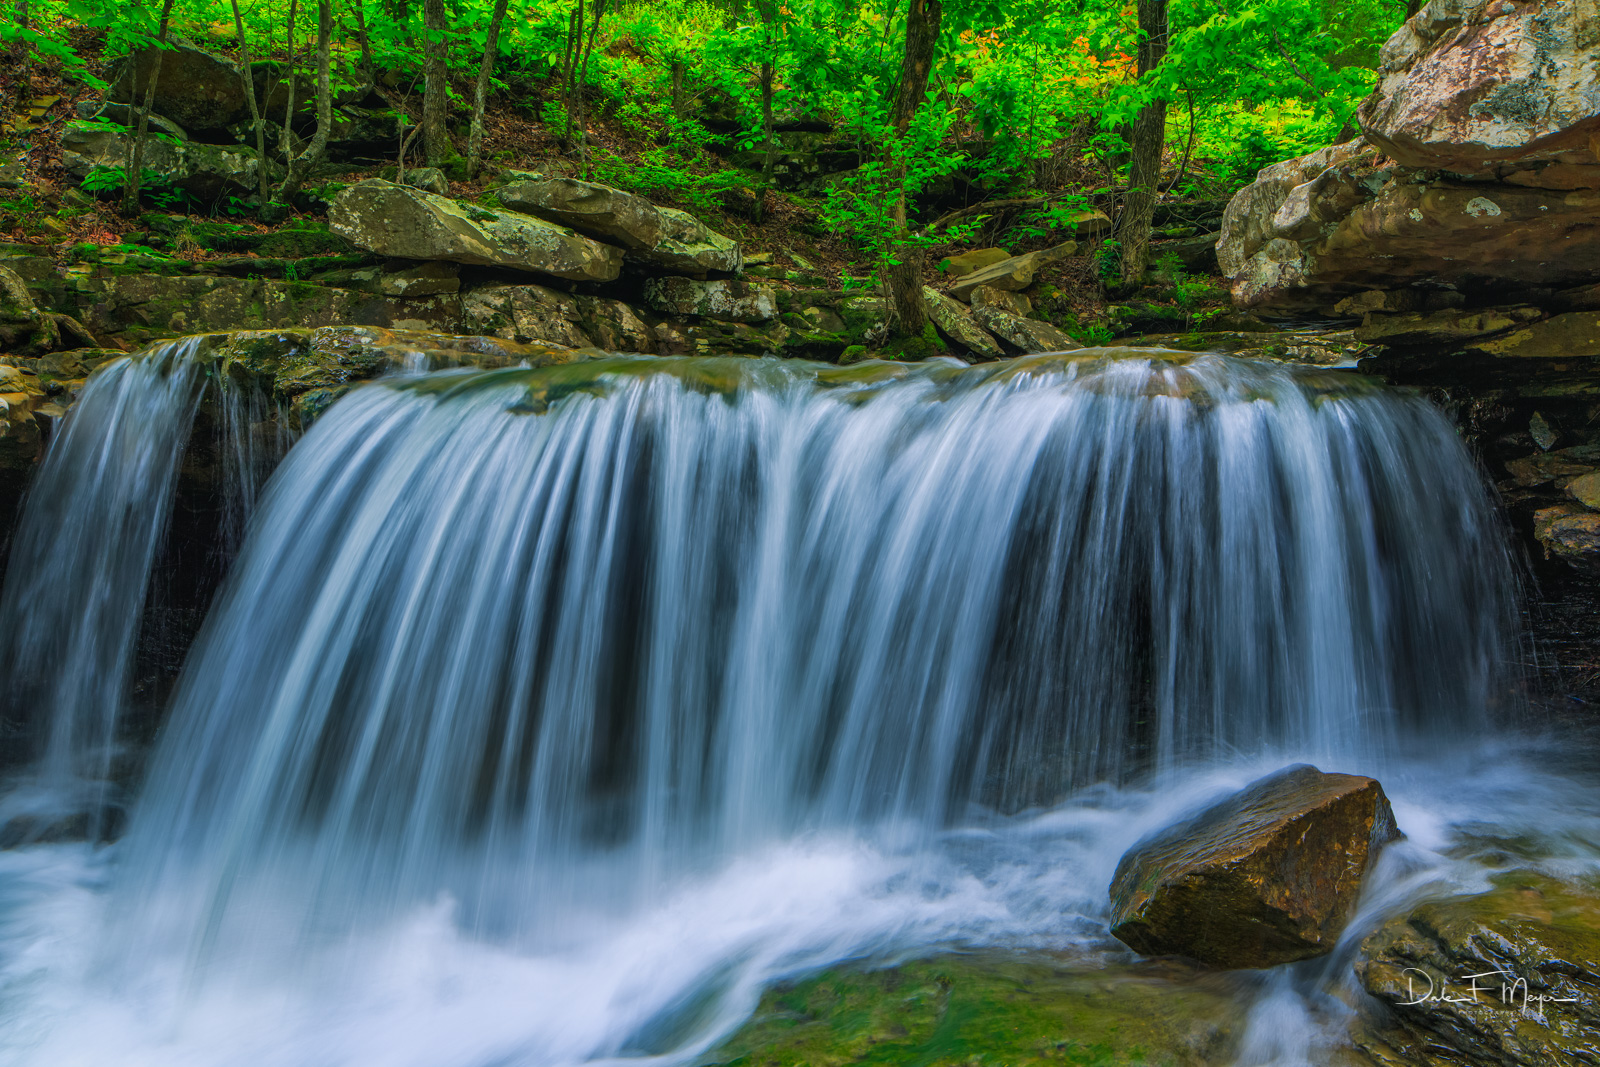 North Arkansas,falling water creek,rivers streams and waterfalls gallerie,spring,water fall, photo